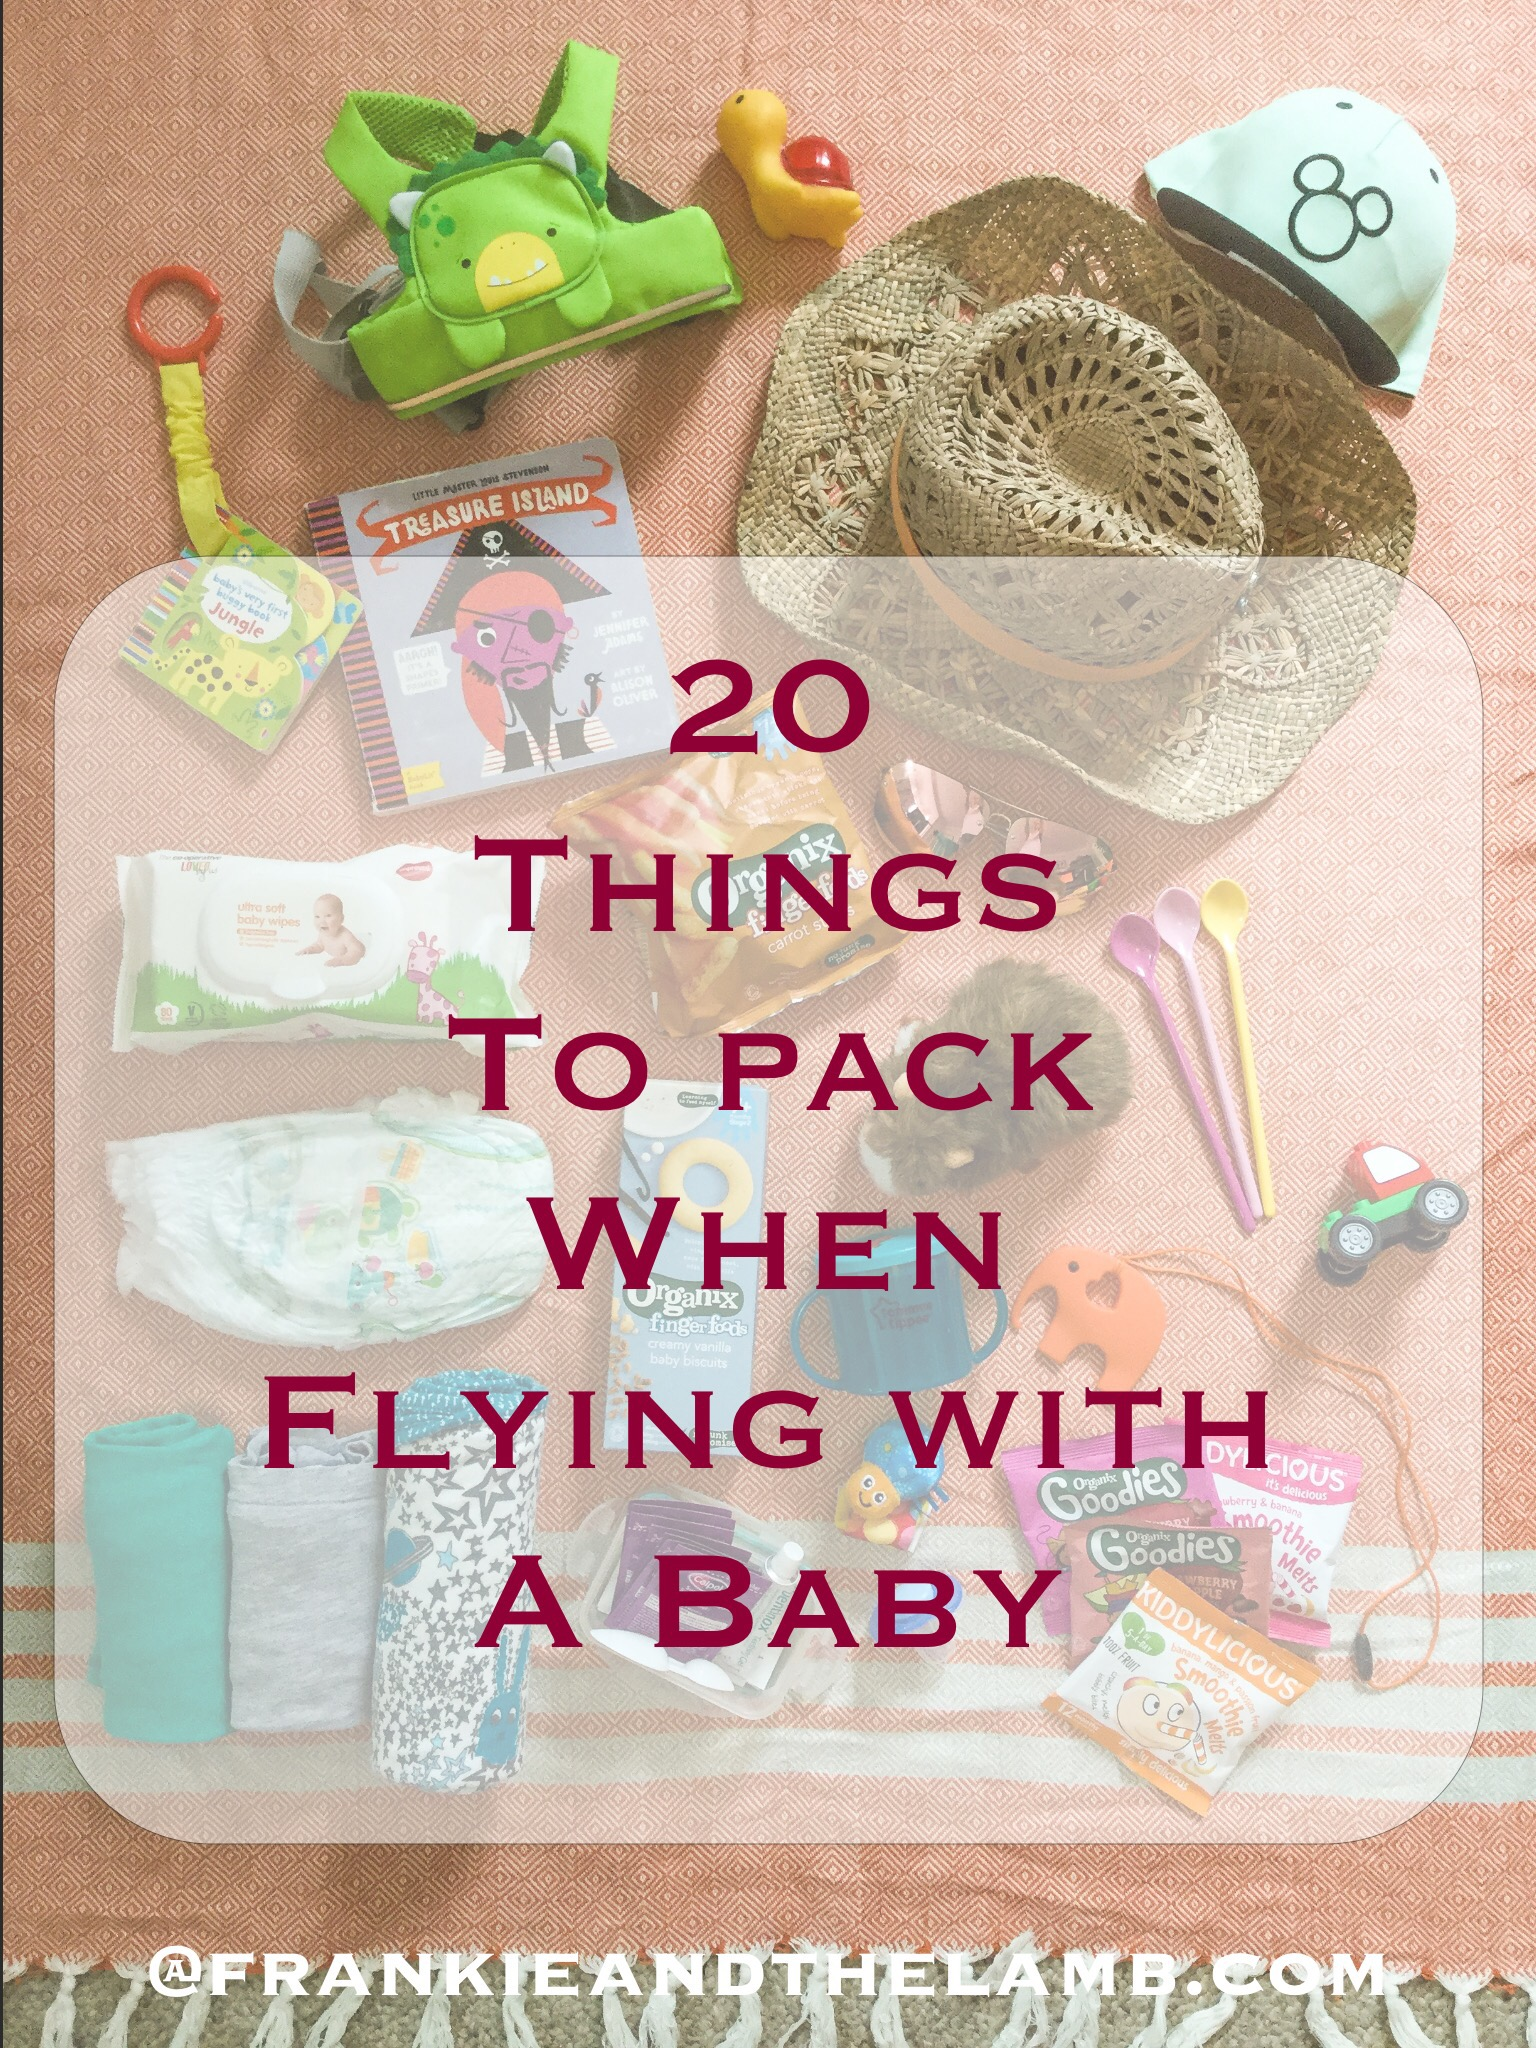 20 Things I Pack When Flying with a Baby Frankie and the Lamb